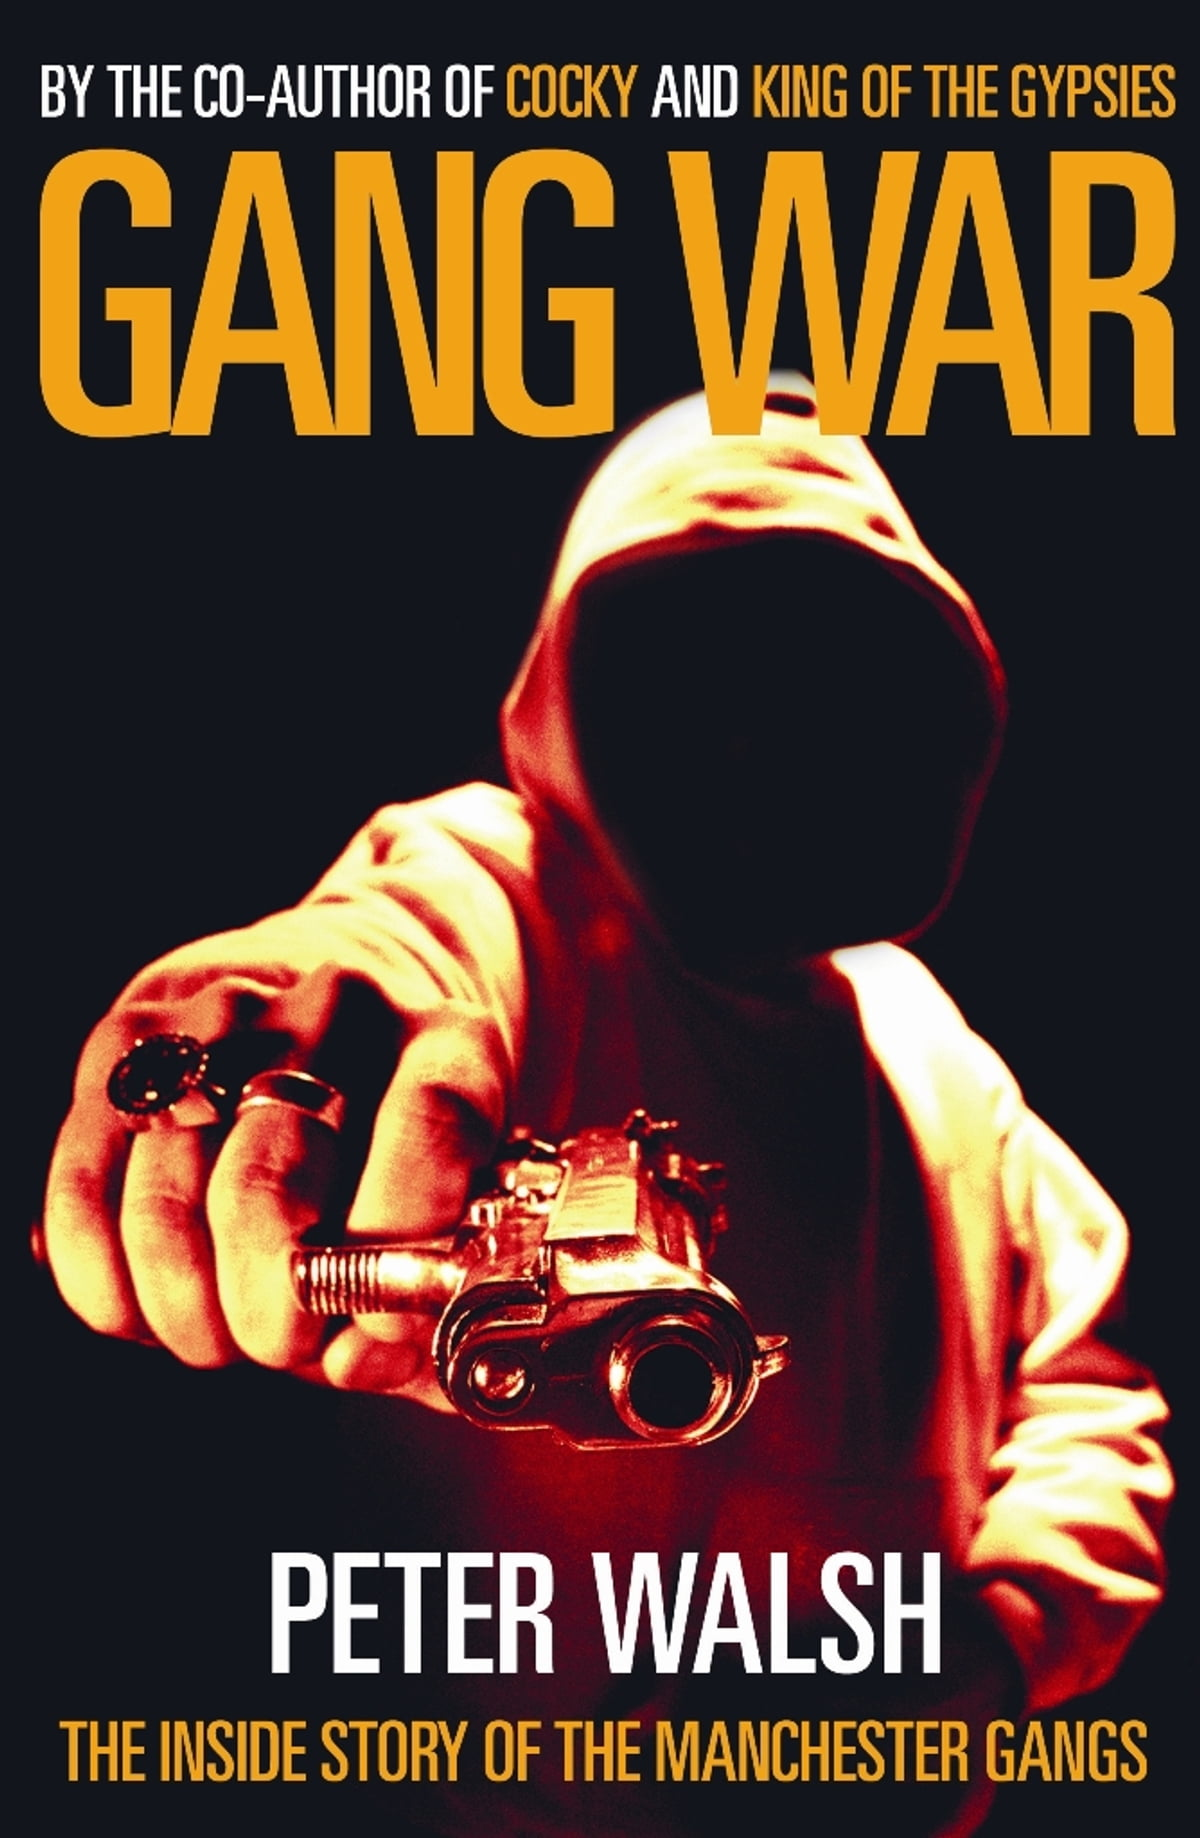 The blackpool rock guns gangs and door wars in britains wildest gang war the inside story of the manchester gangs ebook by peter walsh fandeluxe Ebook collections